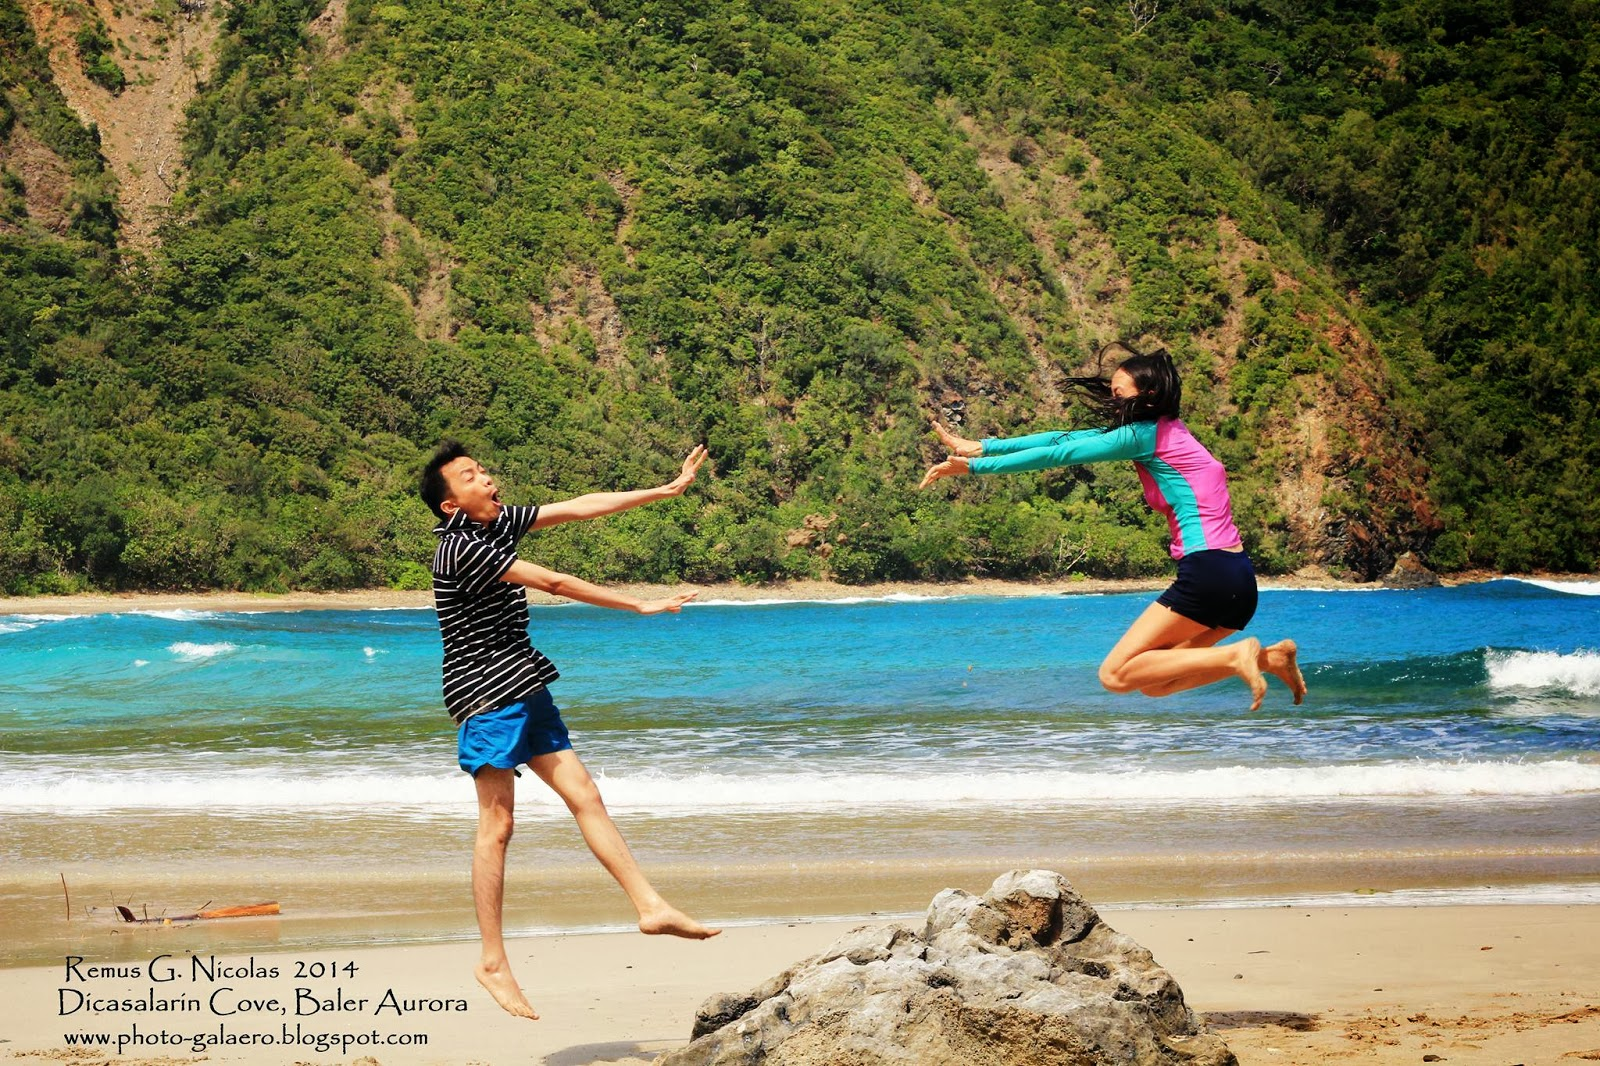 Baler, Backpacking Pinoy Couple, Philippines, It's More Fun in the Philippines, philippine travels, backpacking, backpacking philippines, how to go to aurora, how to go to baler, North Luzon, how to go to Dicasalarin Cove, Dicasalarin Cove, photo-galaero